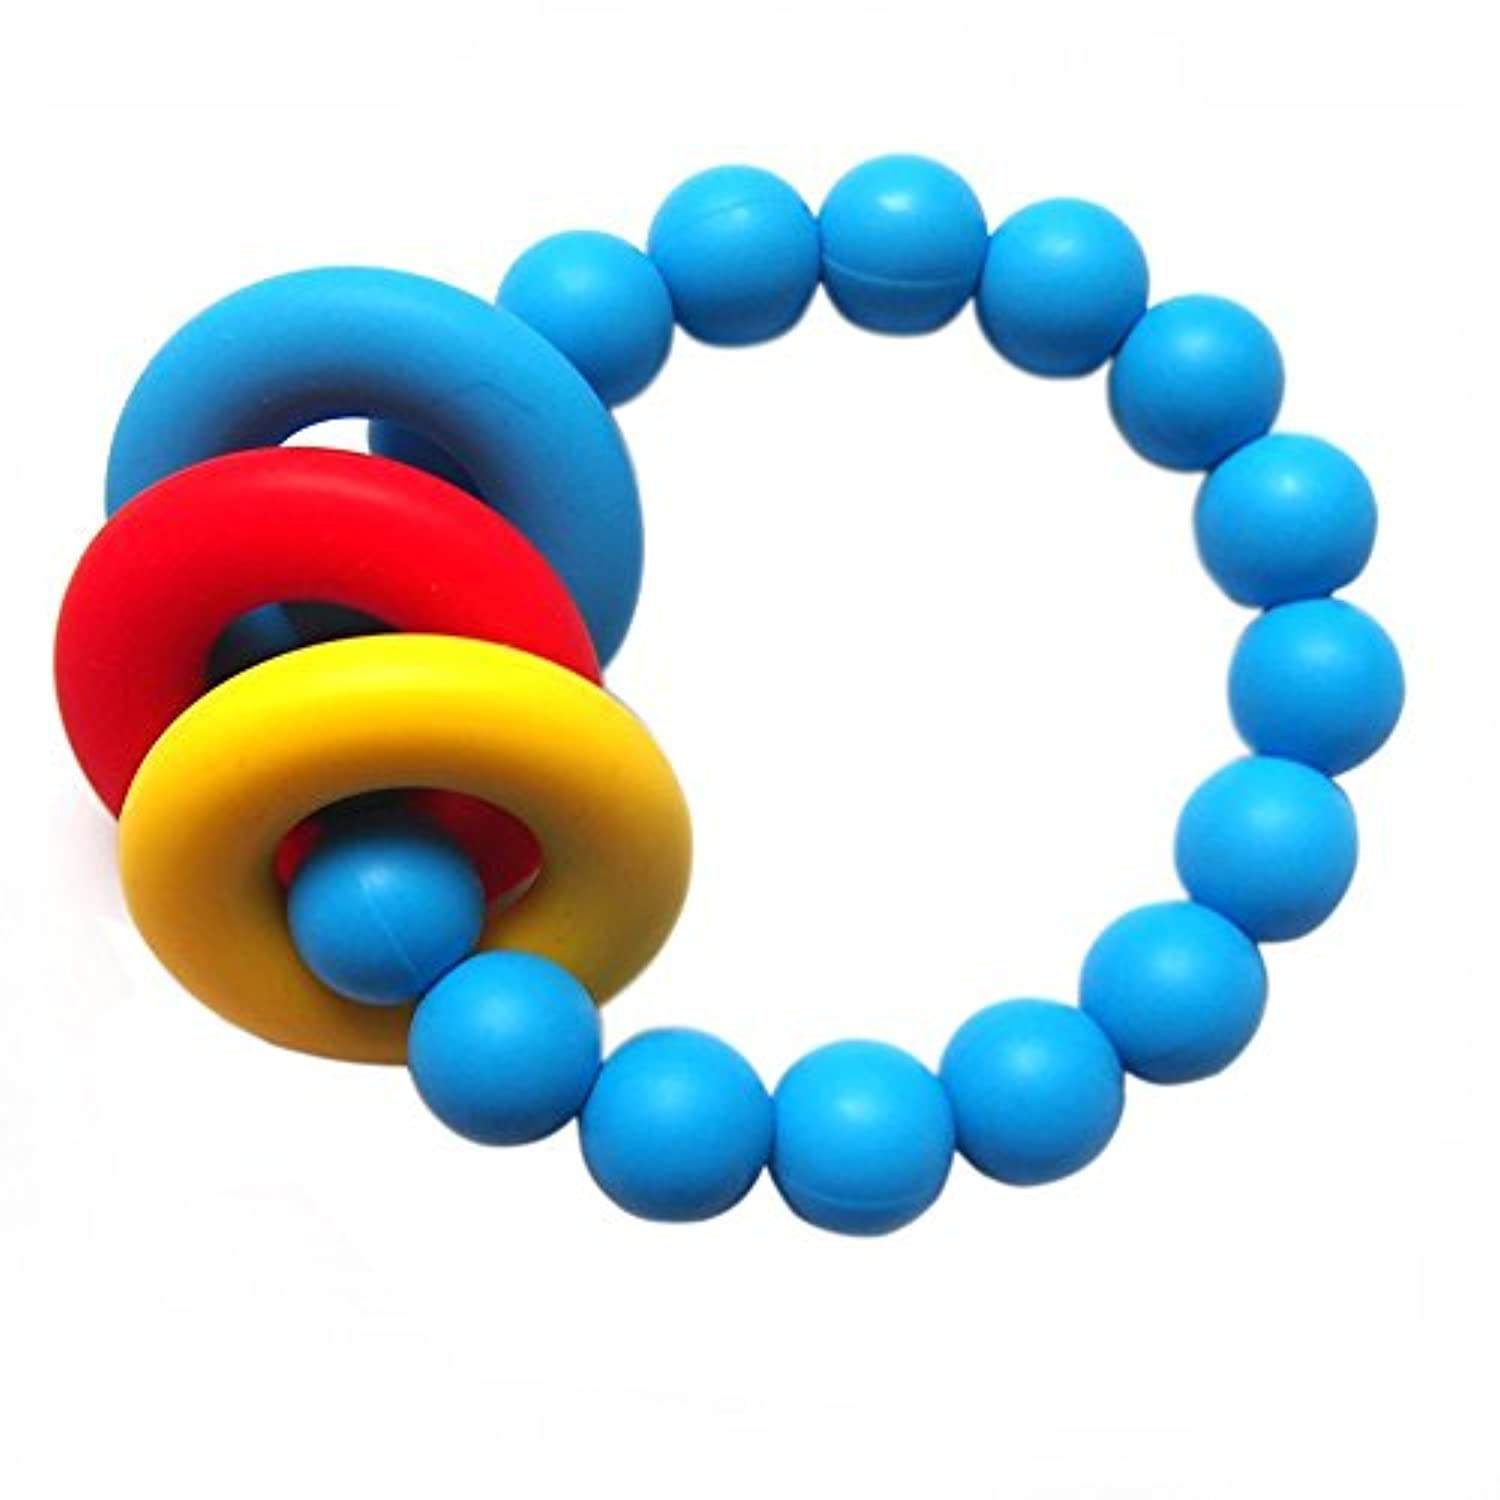 Baby Silicone Sensory Teething Ring Toys,Teether Loop Style Baby Teething Toy BPA-Free by Mugica2011